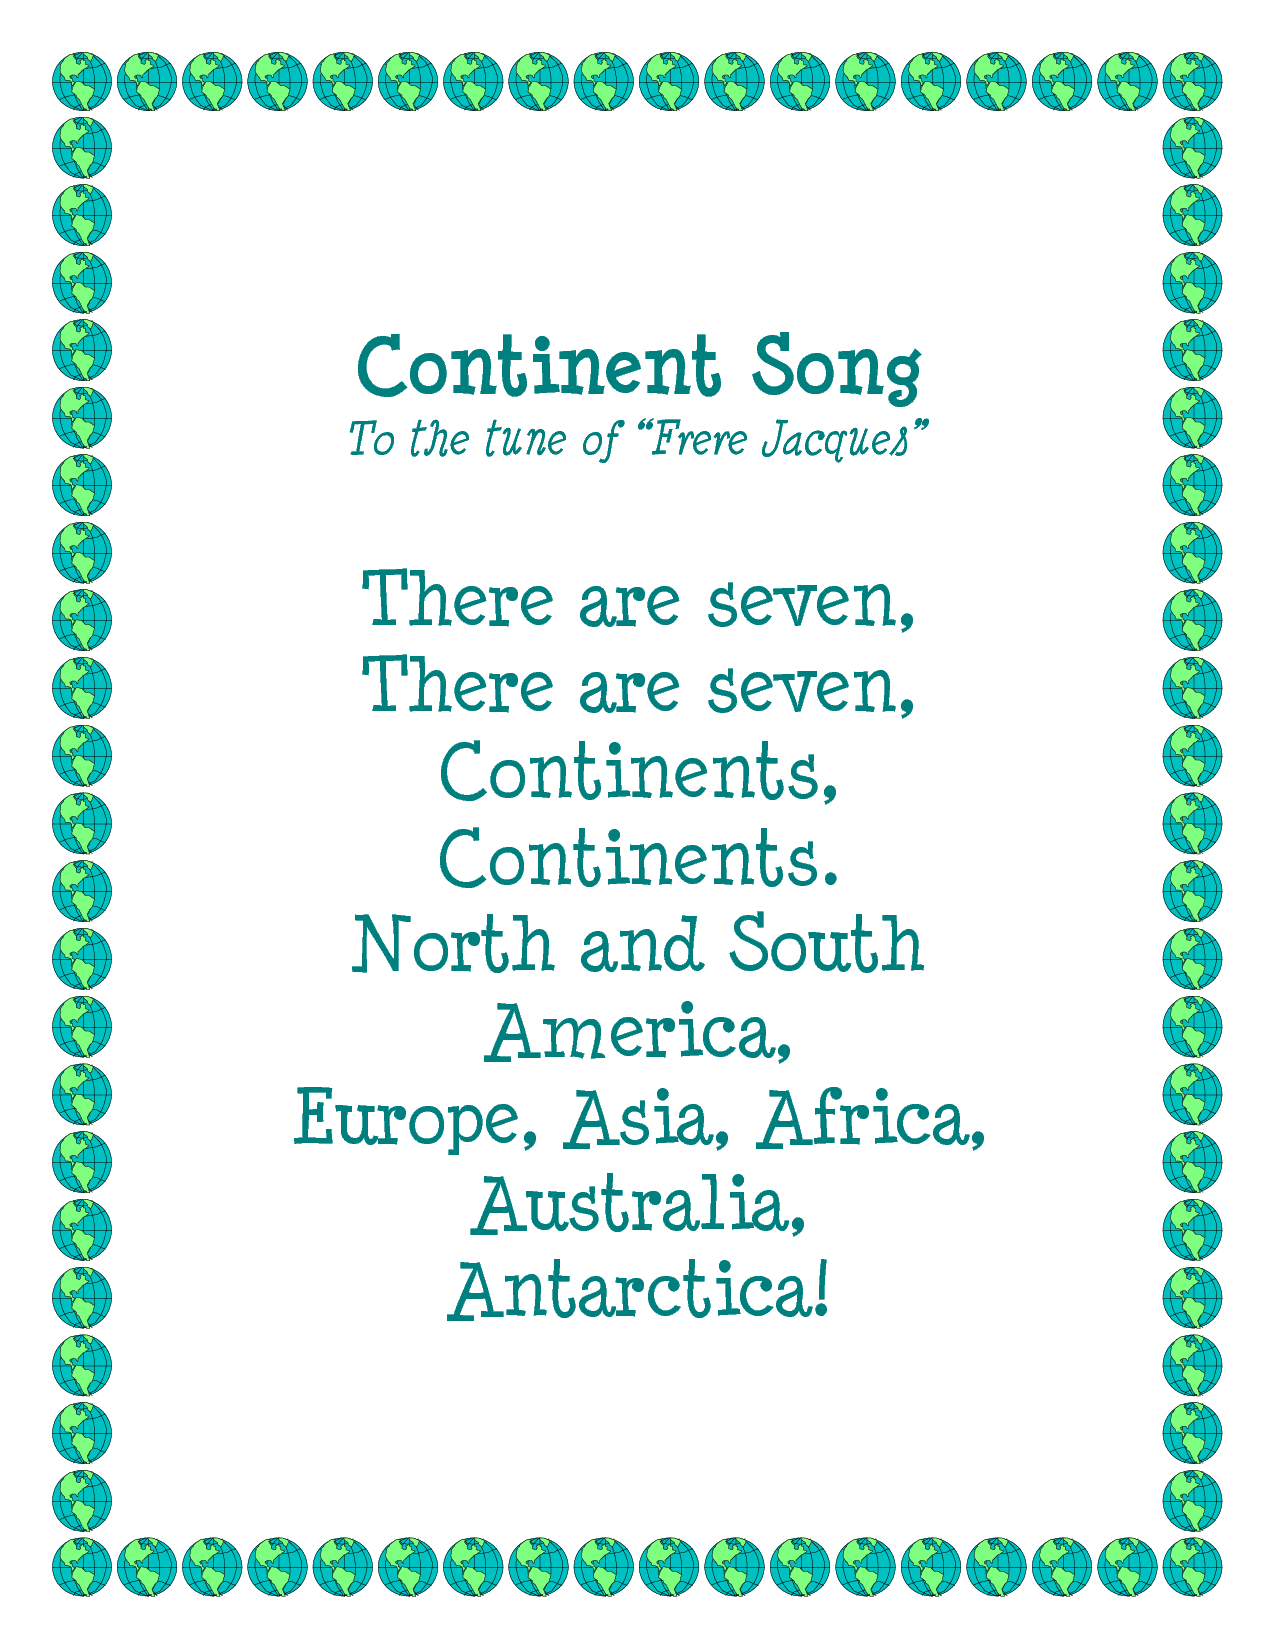 Learning Continents